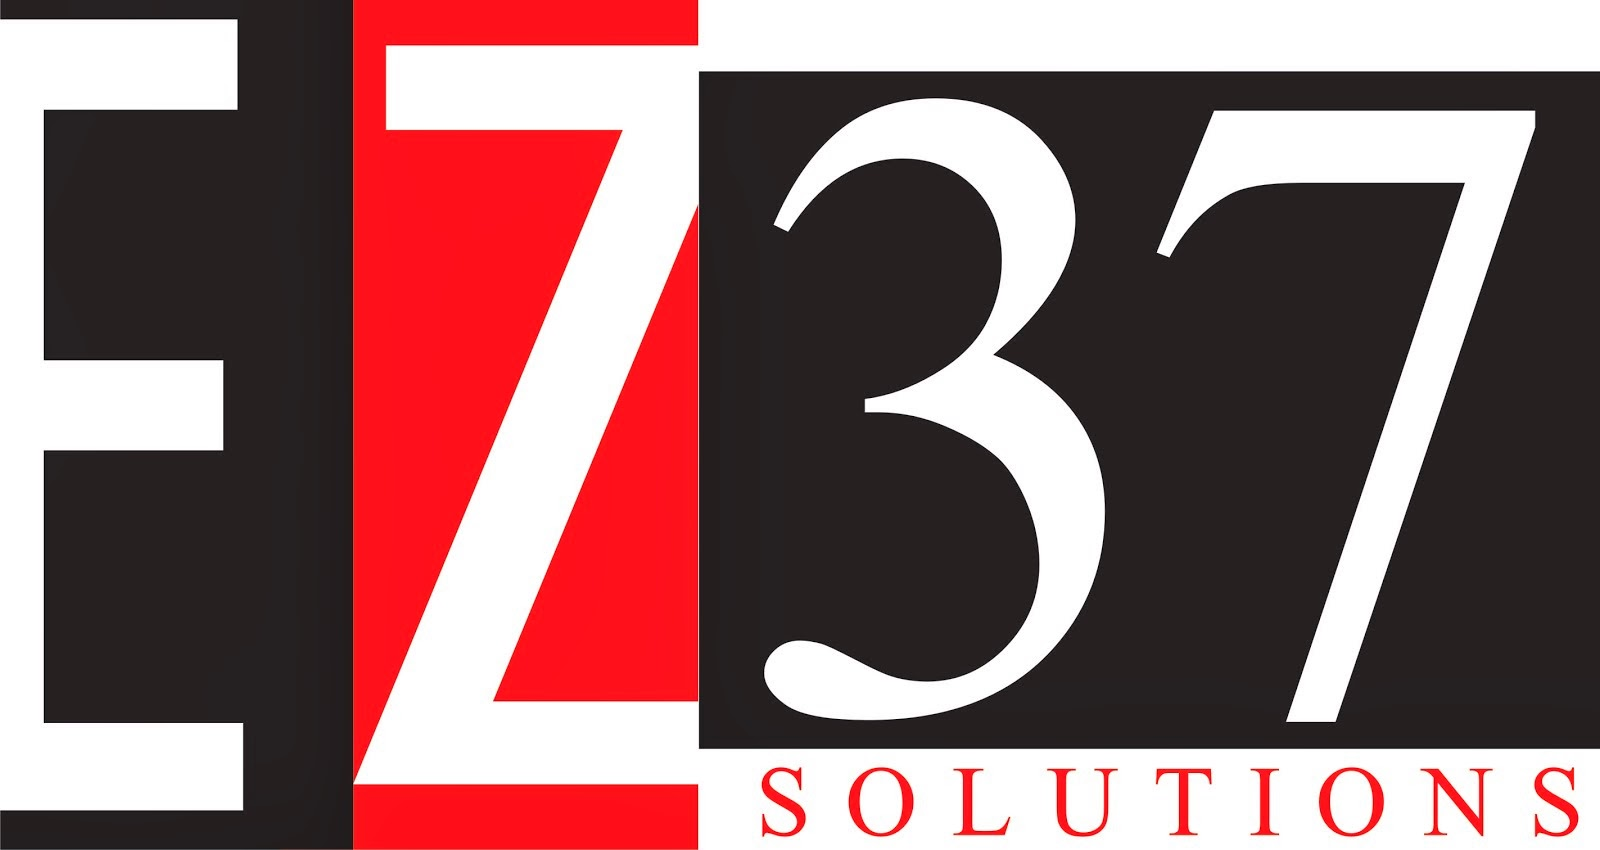 EZ37 Solutions Opinion Page